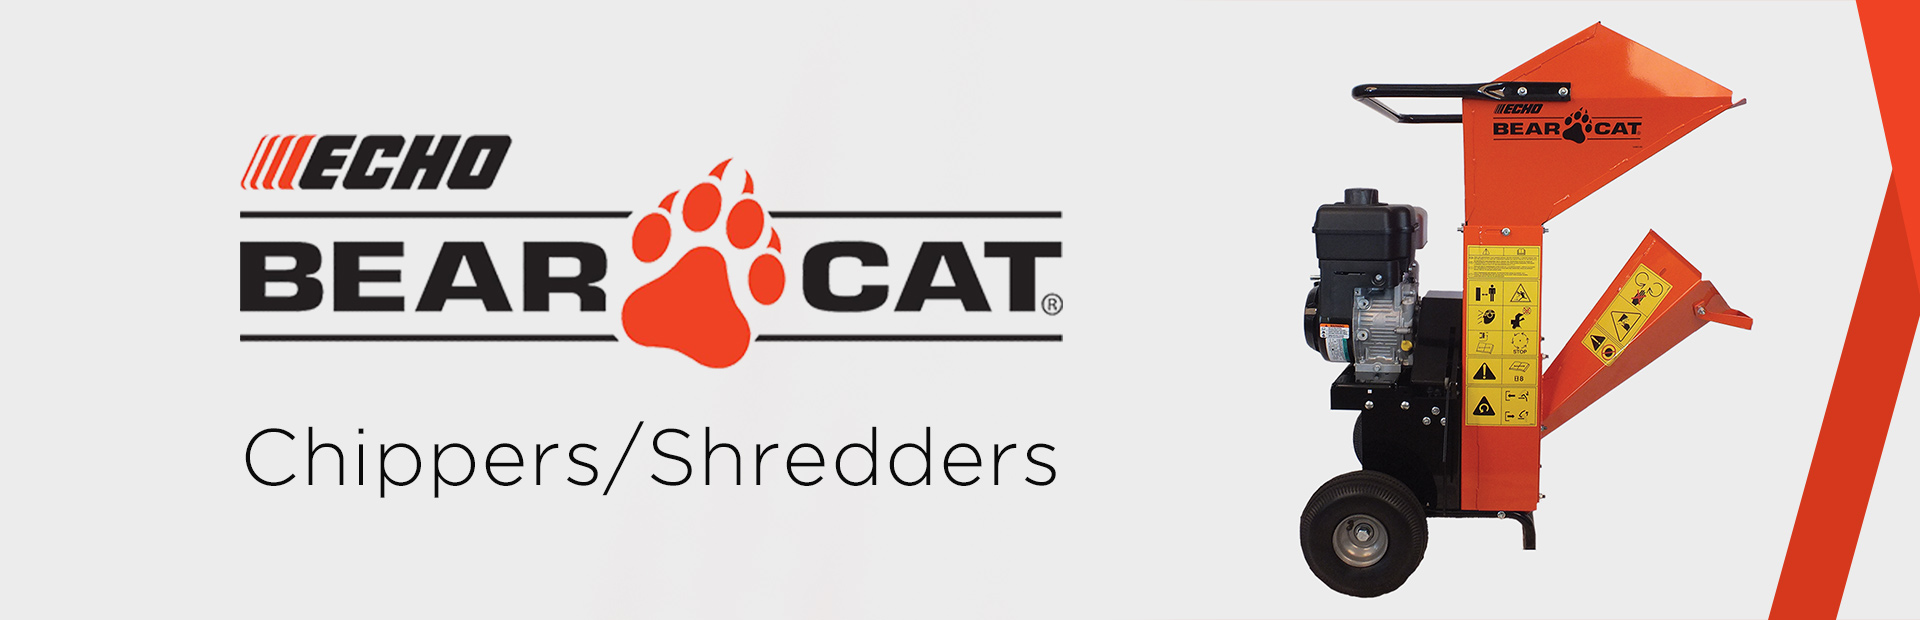 ECHO Bear Cat Chippers/Shredders: Click here to view the models.